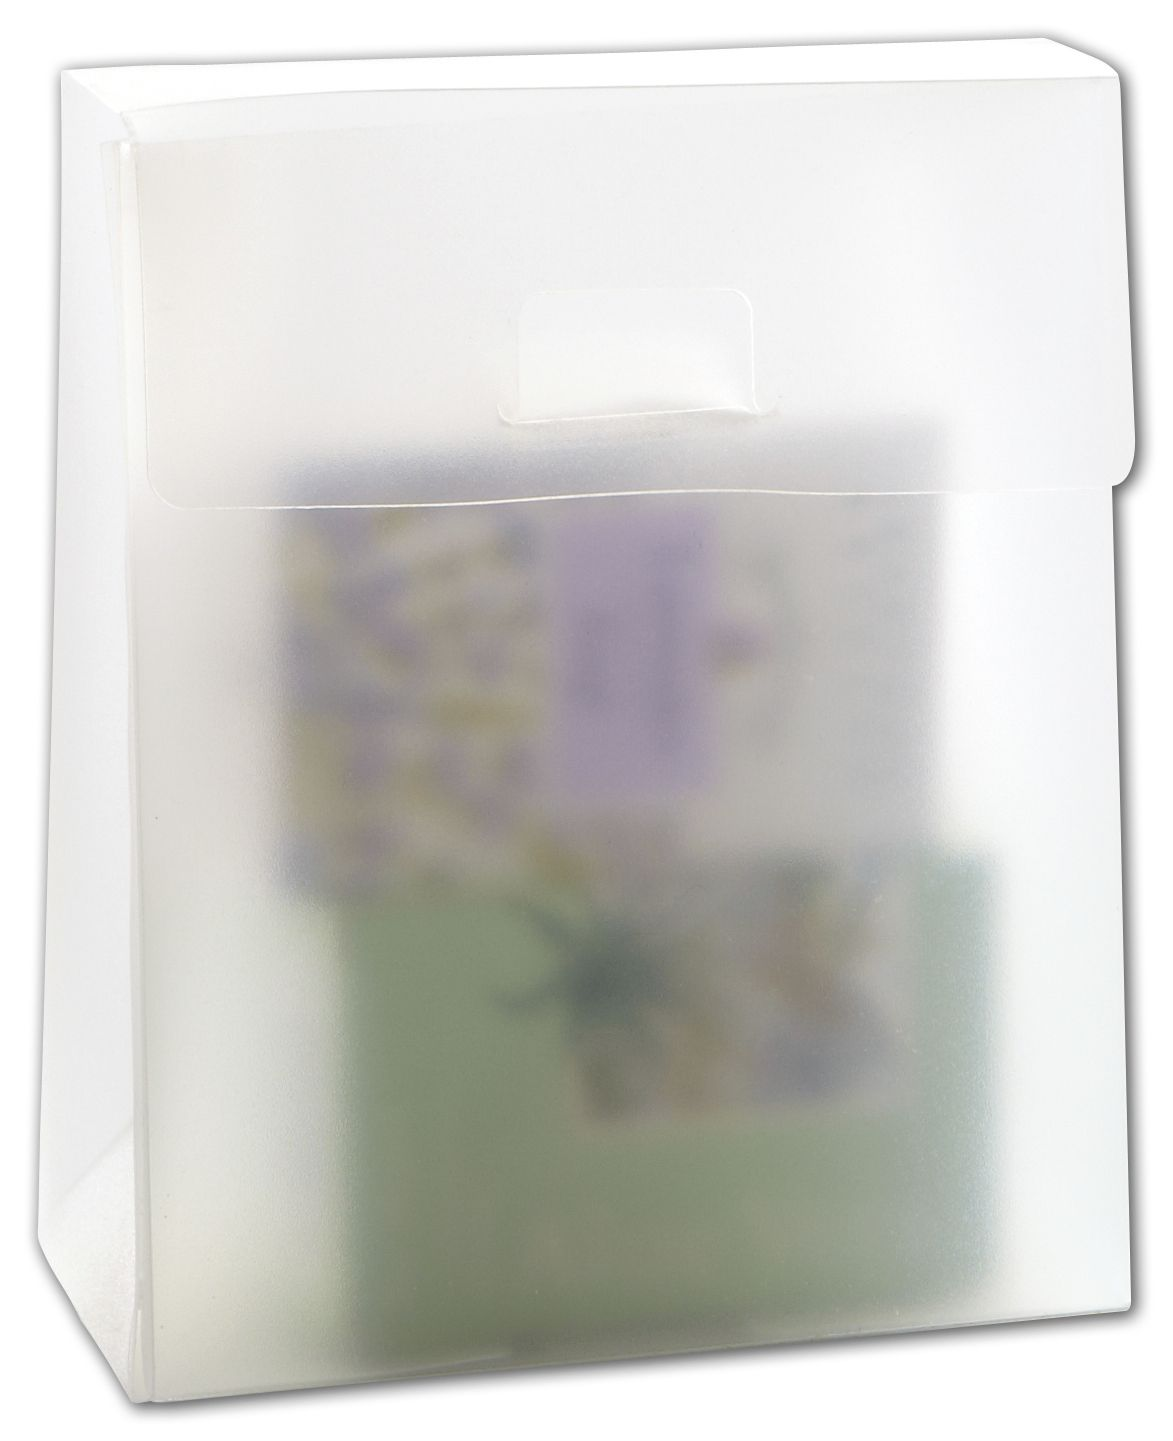 """Frosted Gusset Boxes, 6 1/8 x 2 1/2 x 5"""" (50 Boxes) - BOWS-250-060502-C"""